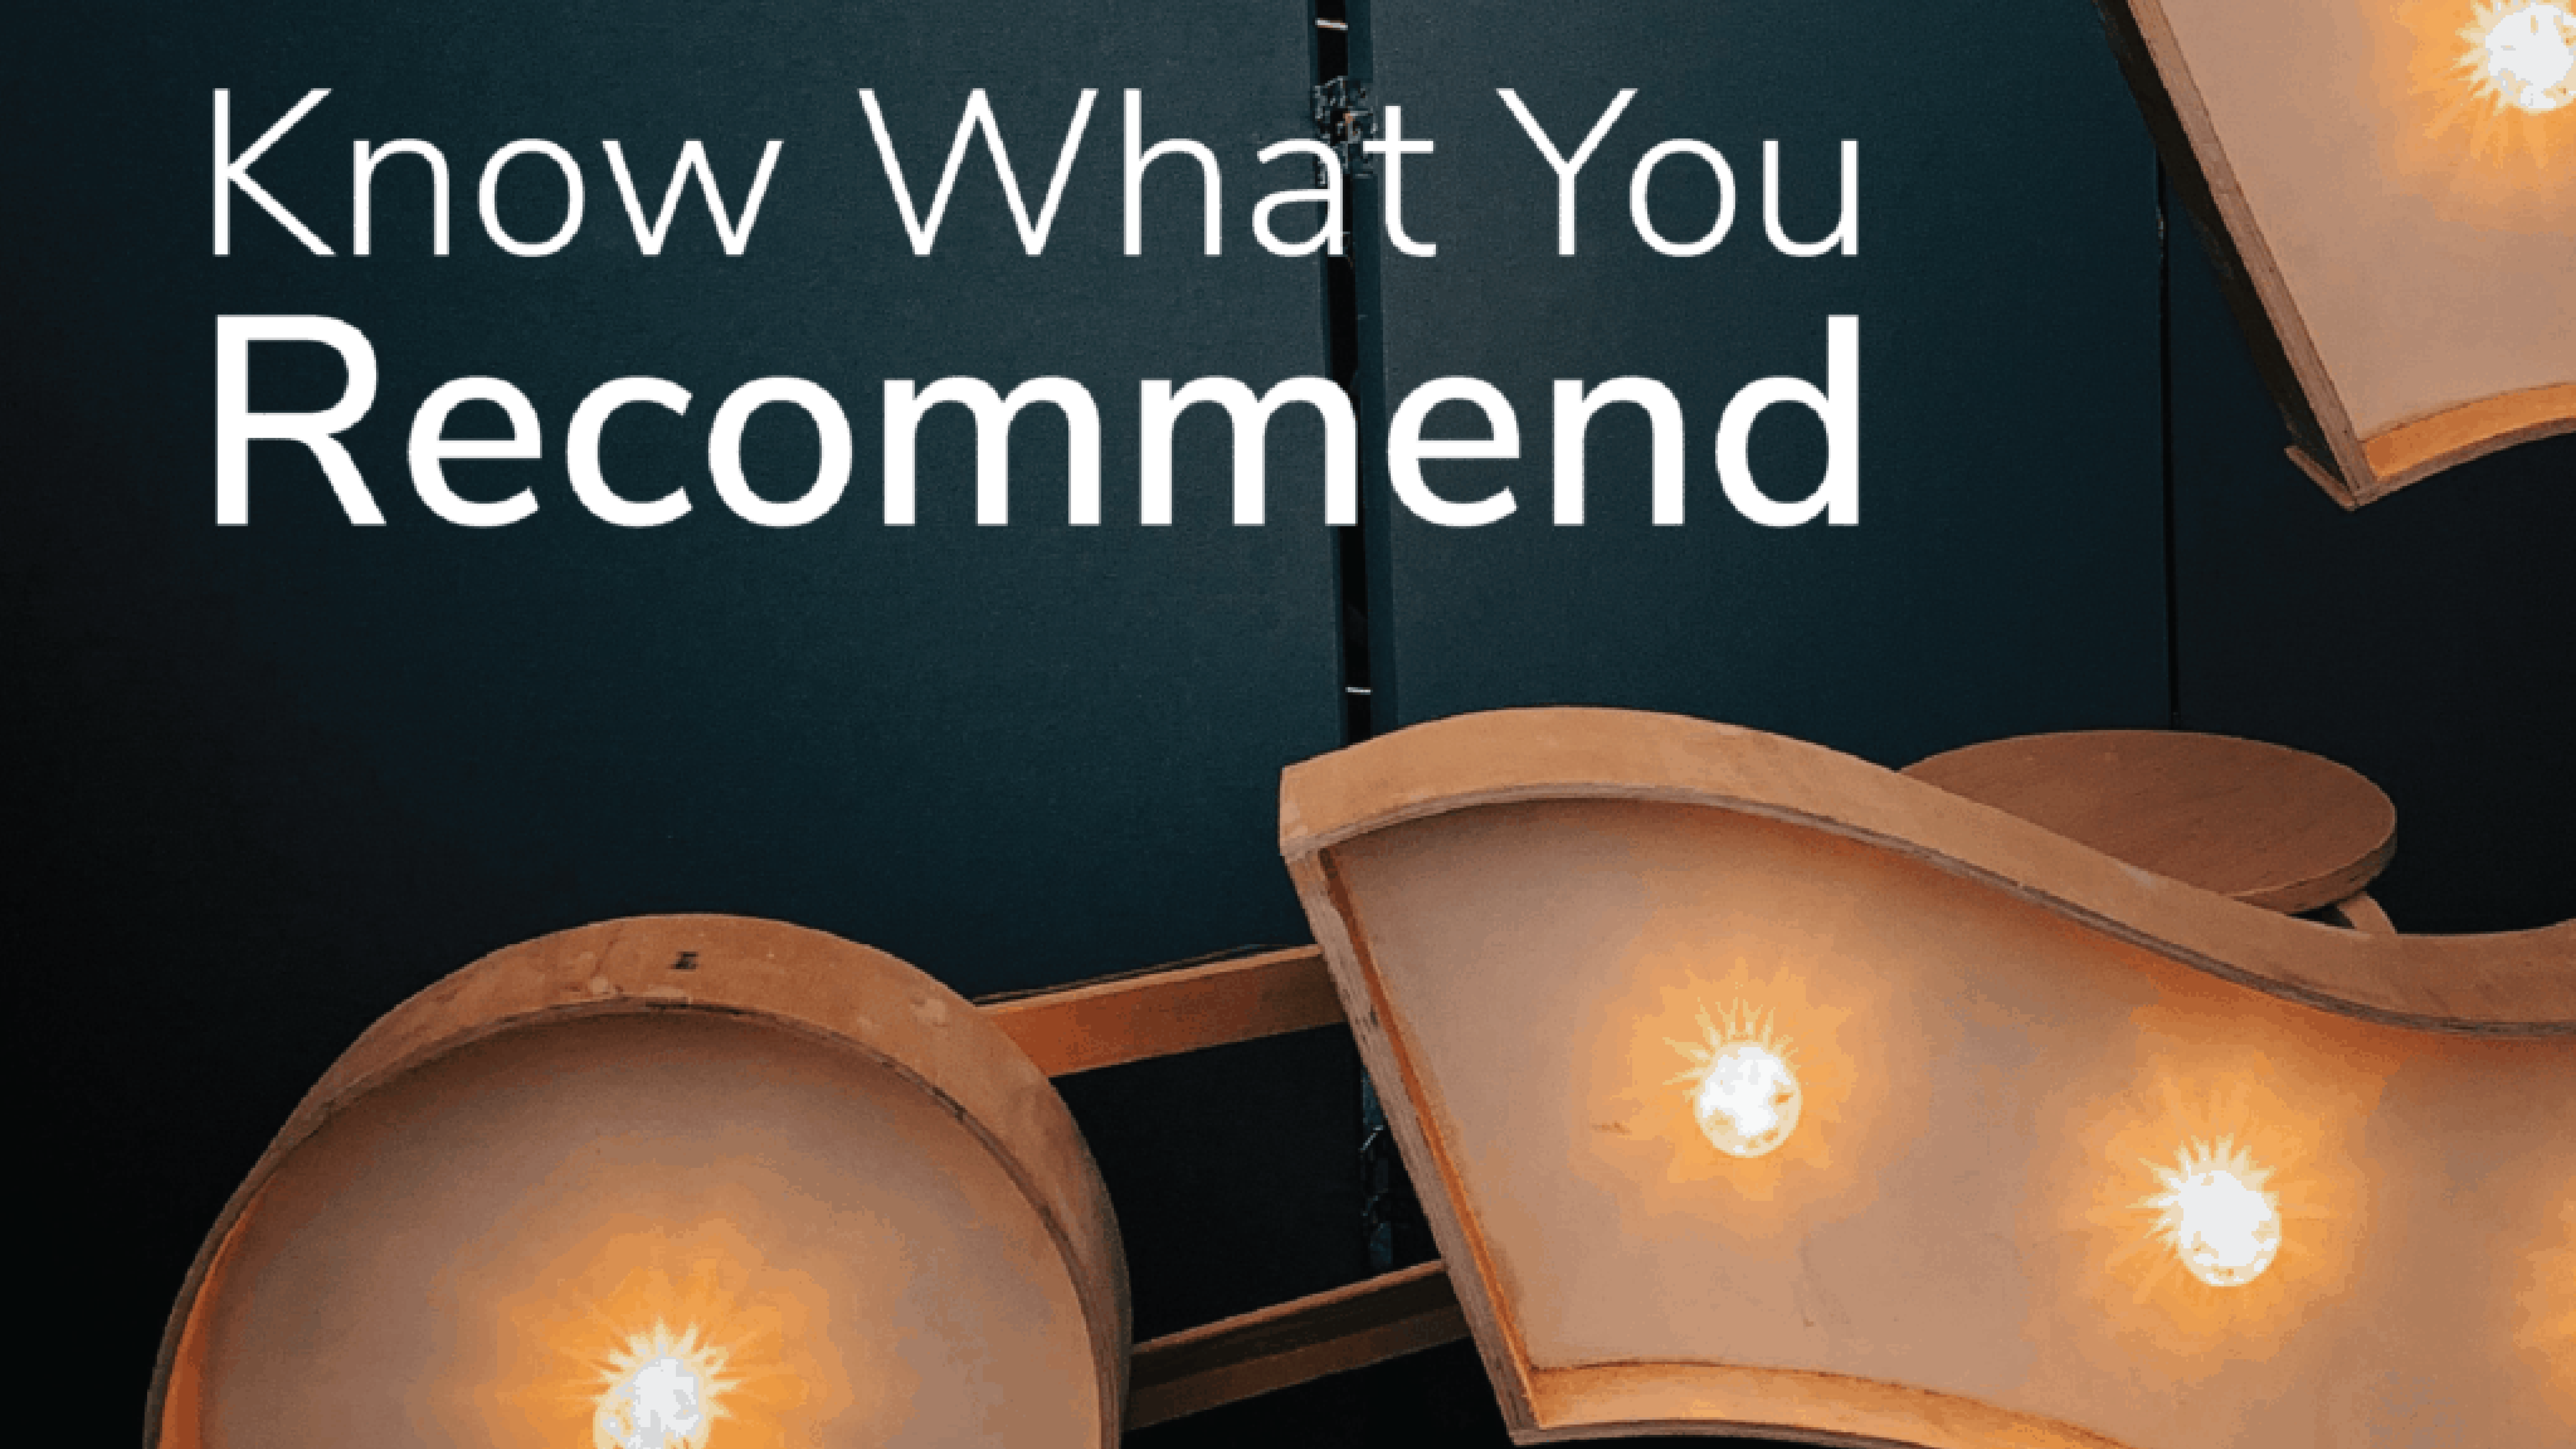 Know What You Recommend